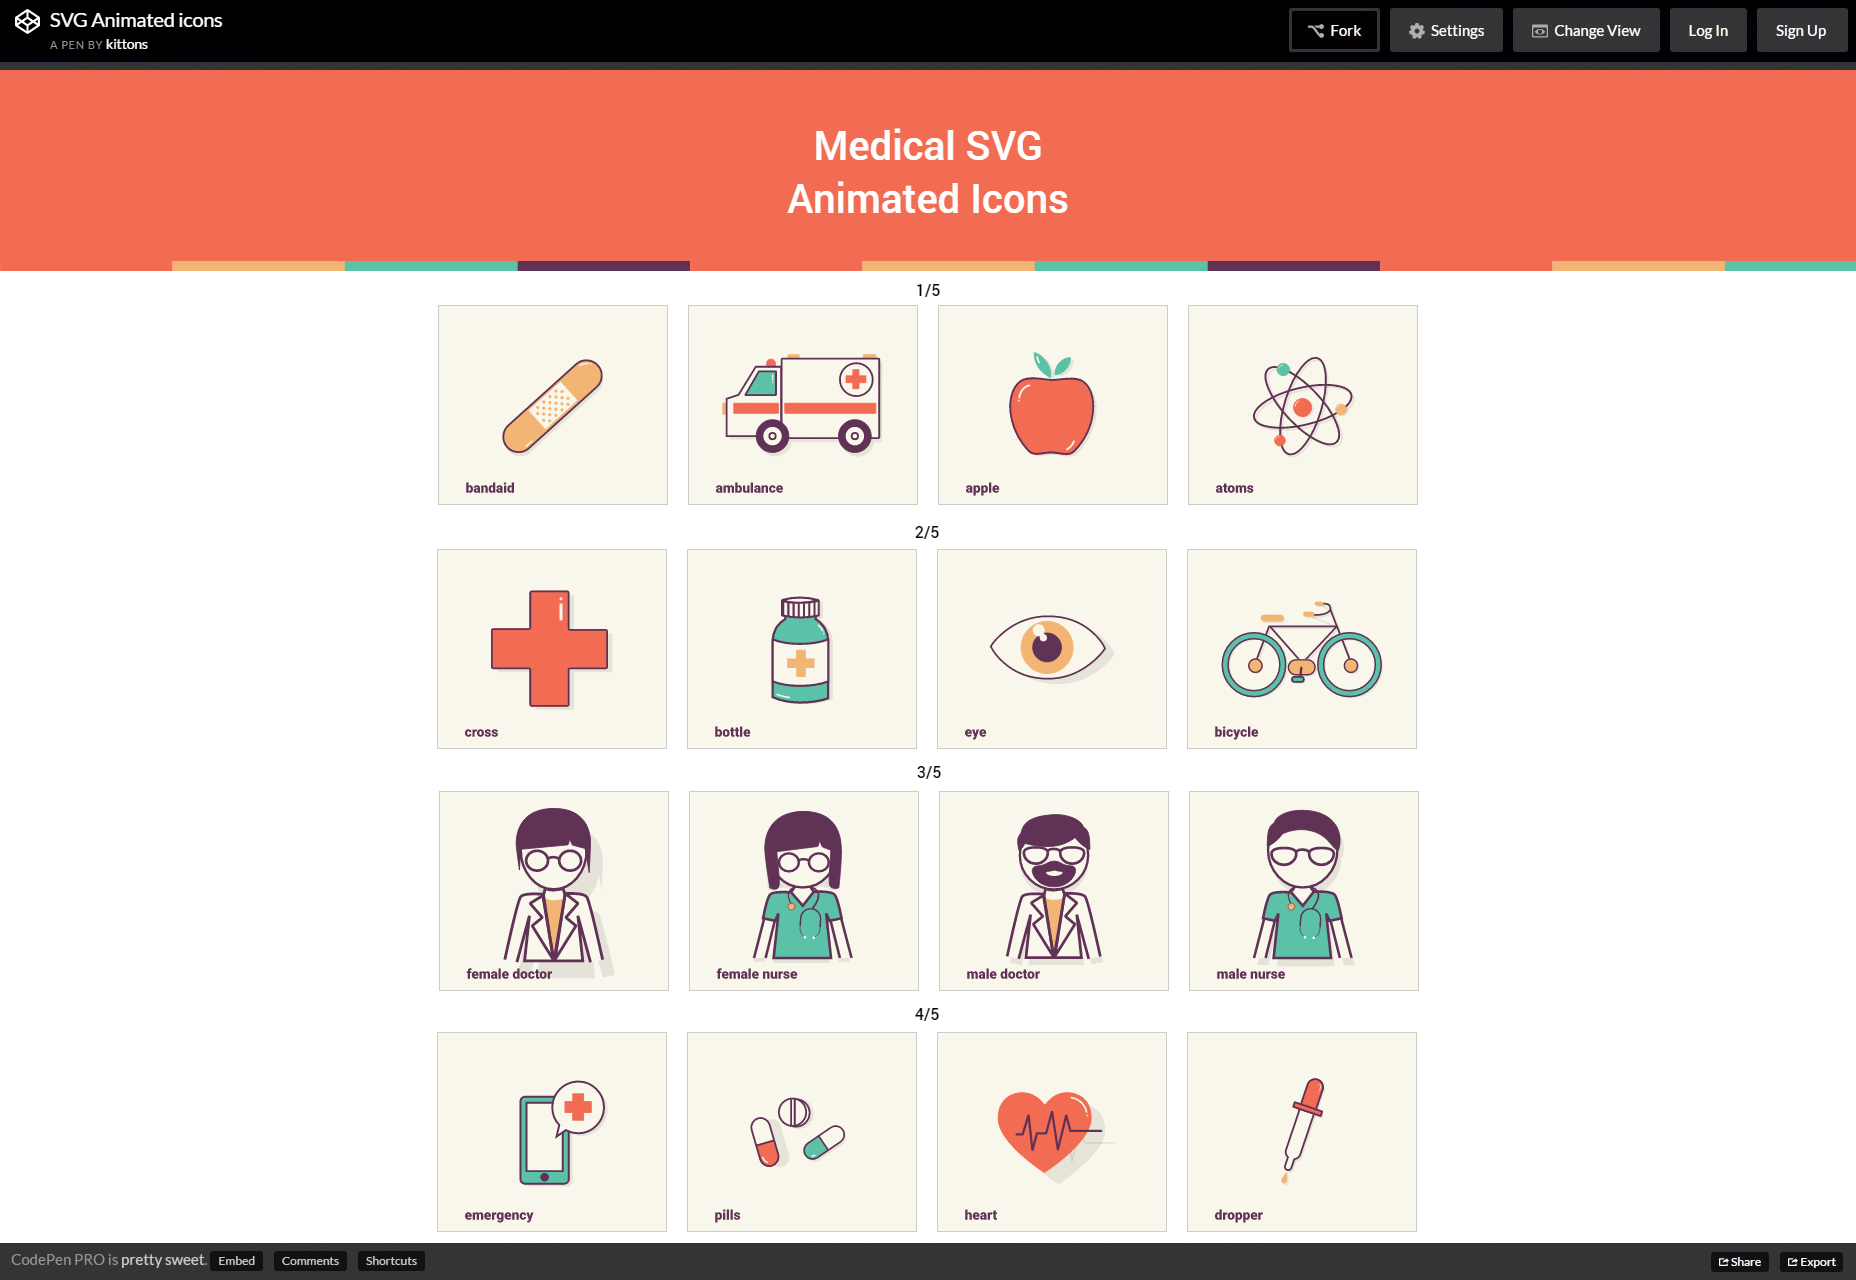 SVG Animated Medical Icons